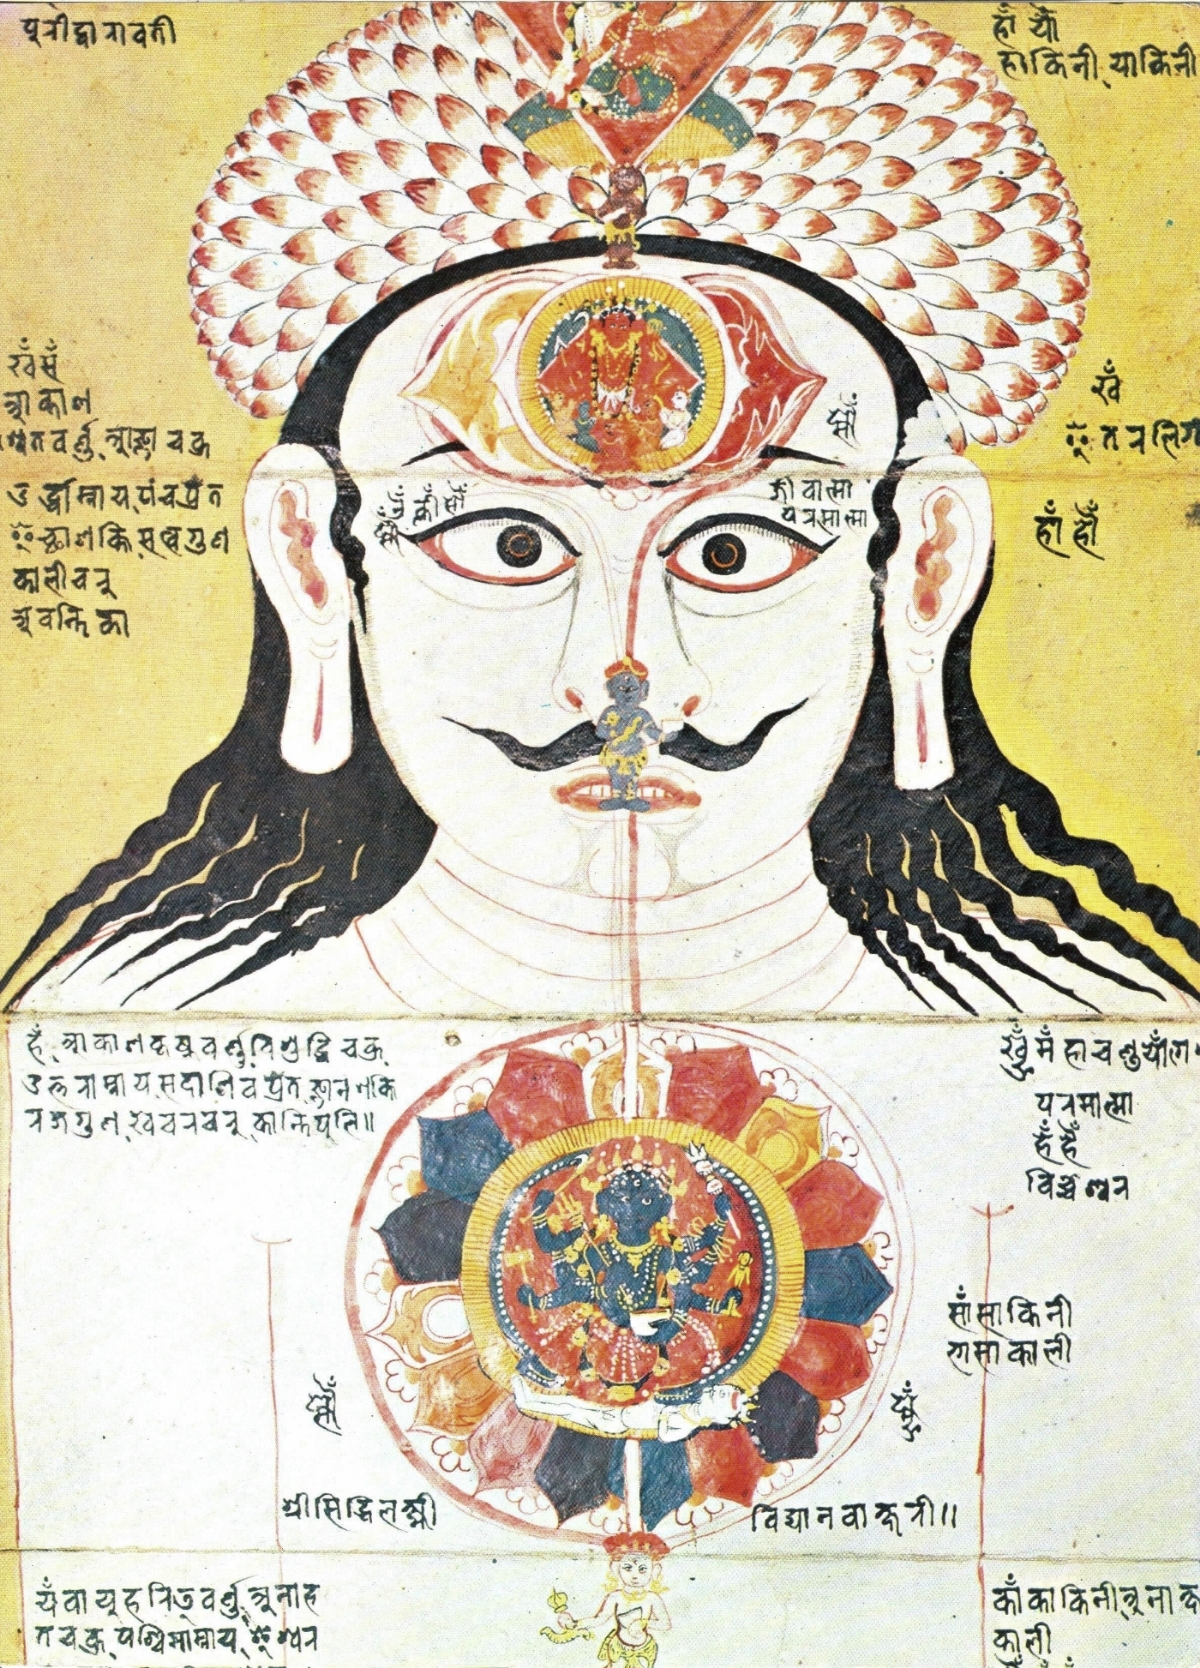 An 18th-century image of several chakras, probably from Rājasthān.